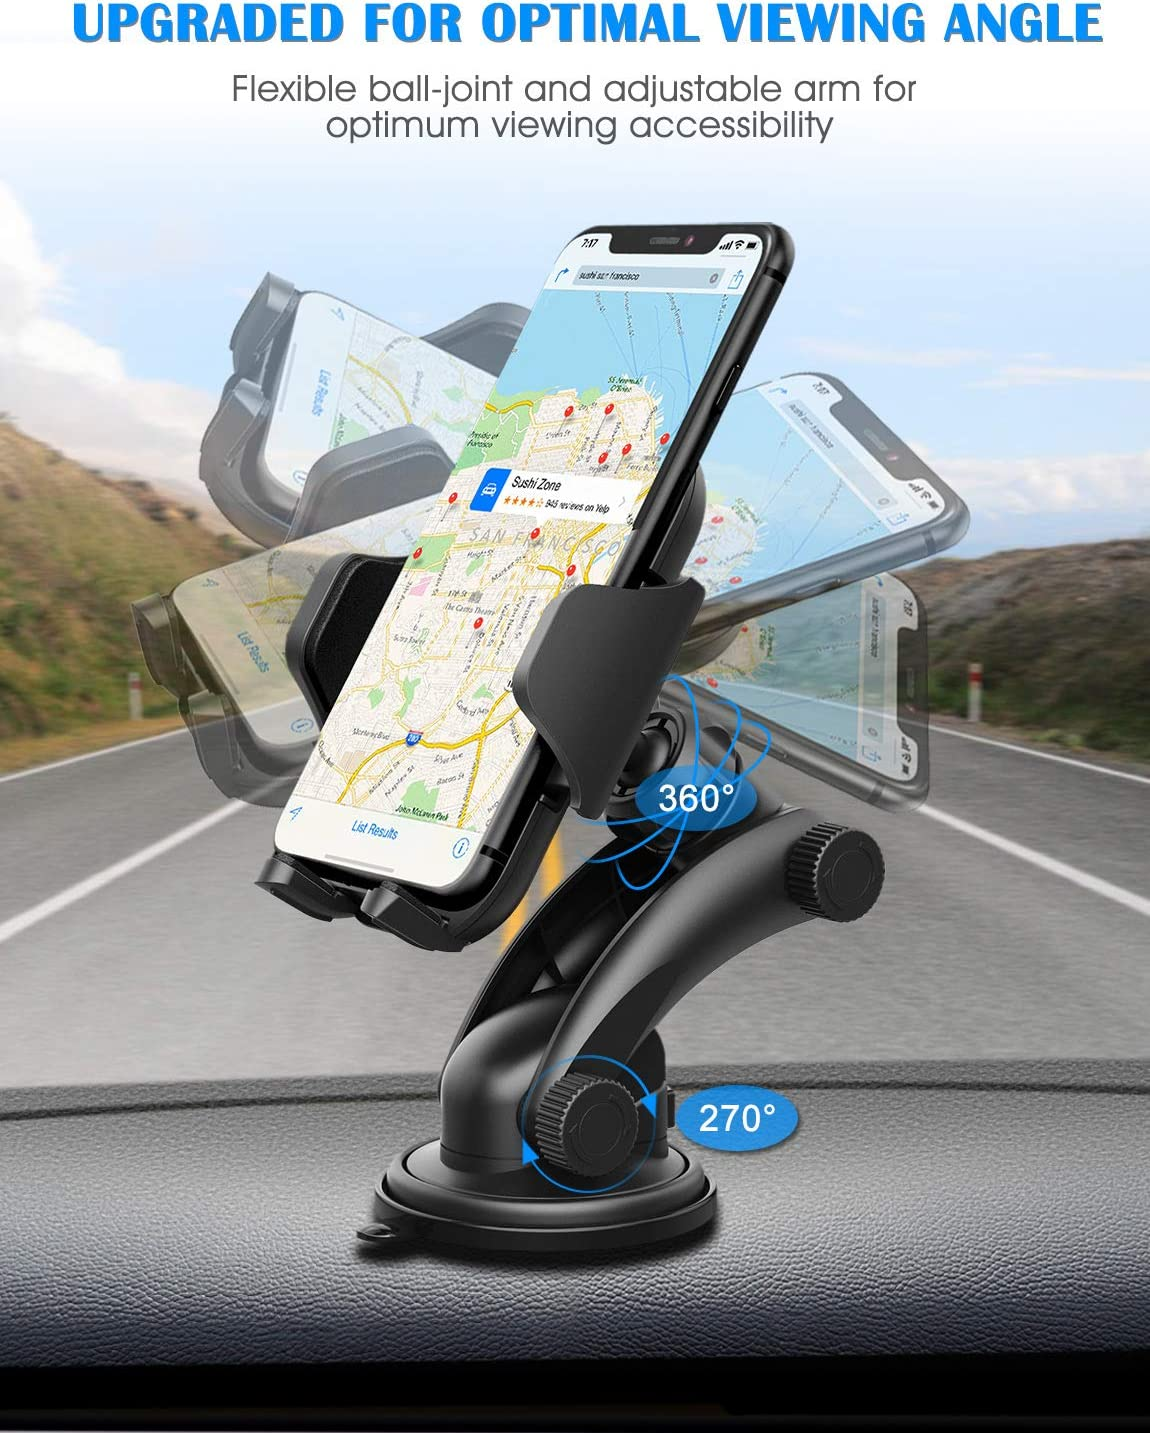 LG Galaxy S8//S7//S6 Mpow Car Phone Holder One-Touch Design/&Washable Strong Sticky Gel Pad Compatible iPhone XS//XR//X//8//8Plus7//7P//6s//6P Huawei and More Google Dashboard Car Phone Mount Holder